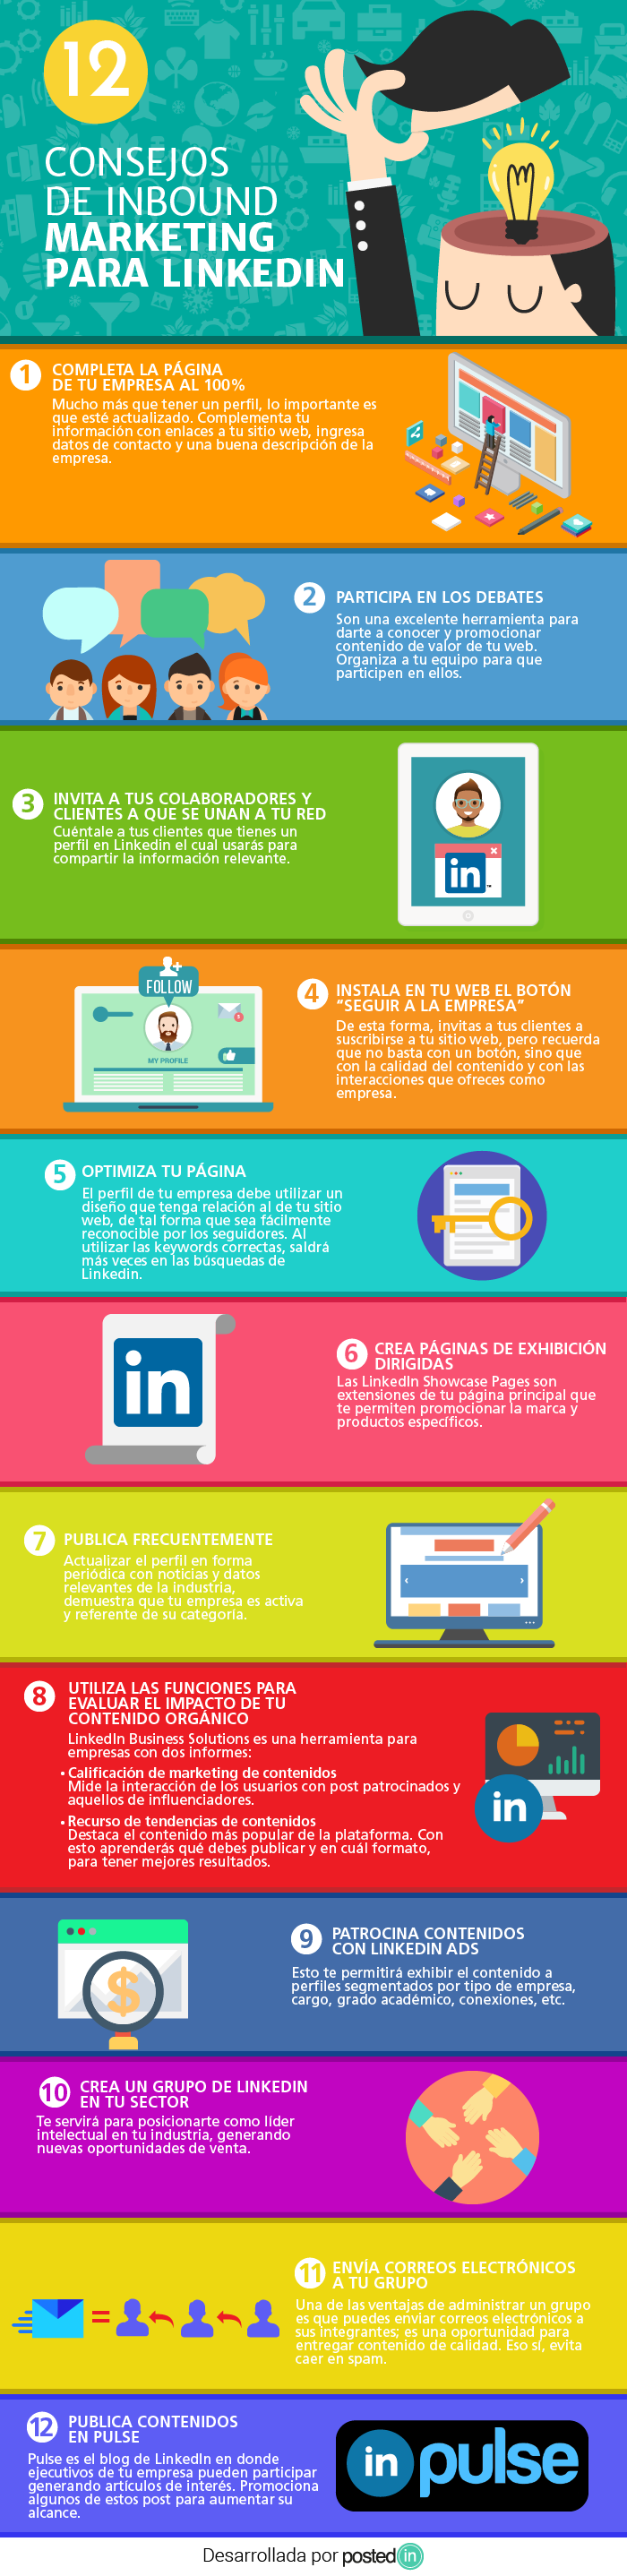 12 consejos de inbound marketing para LinkedIn